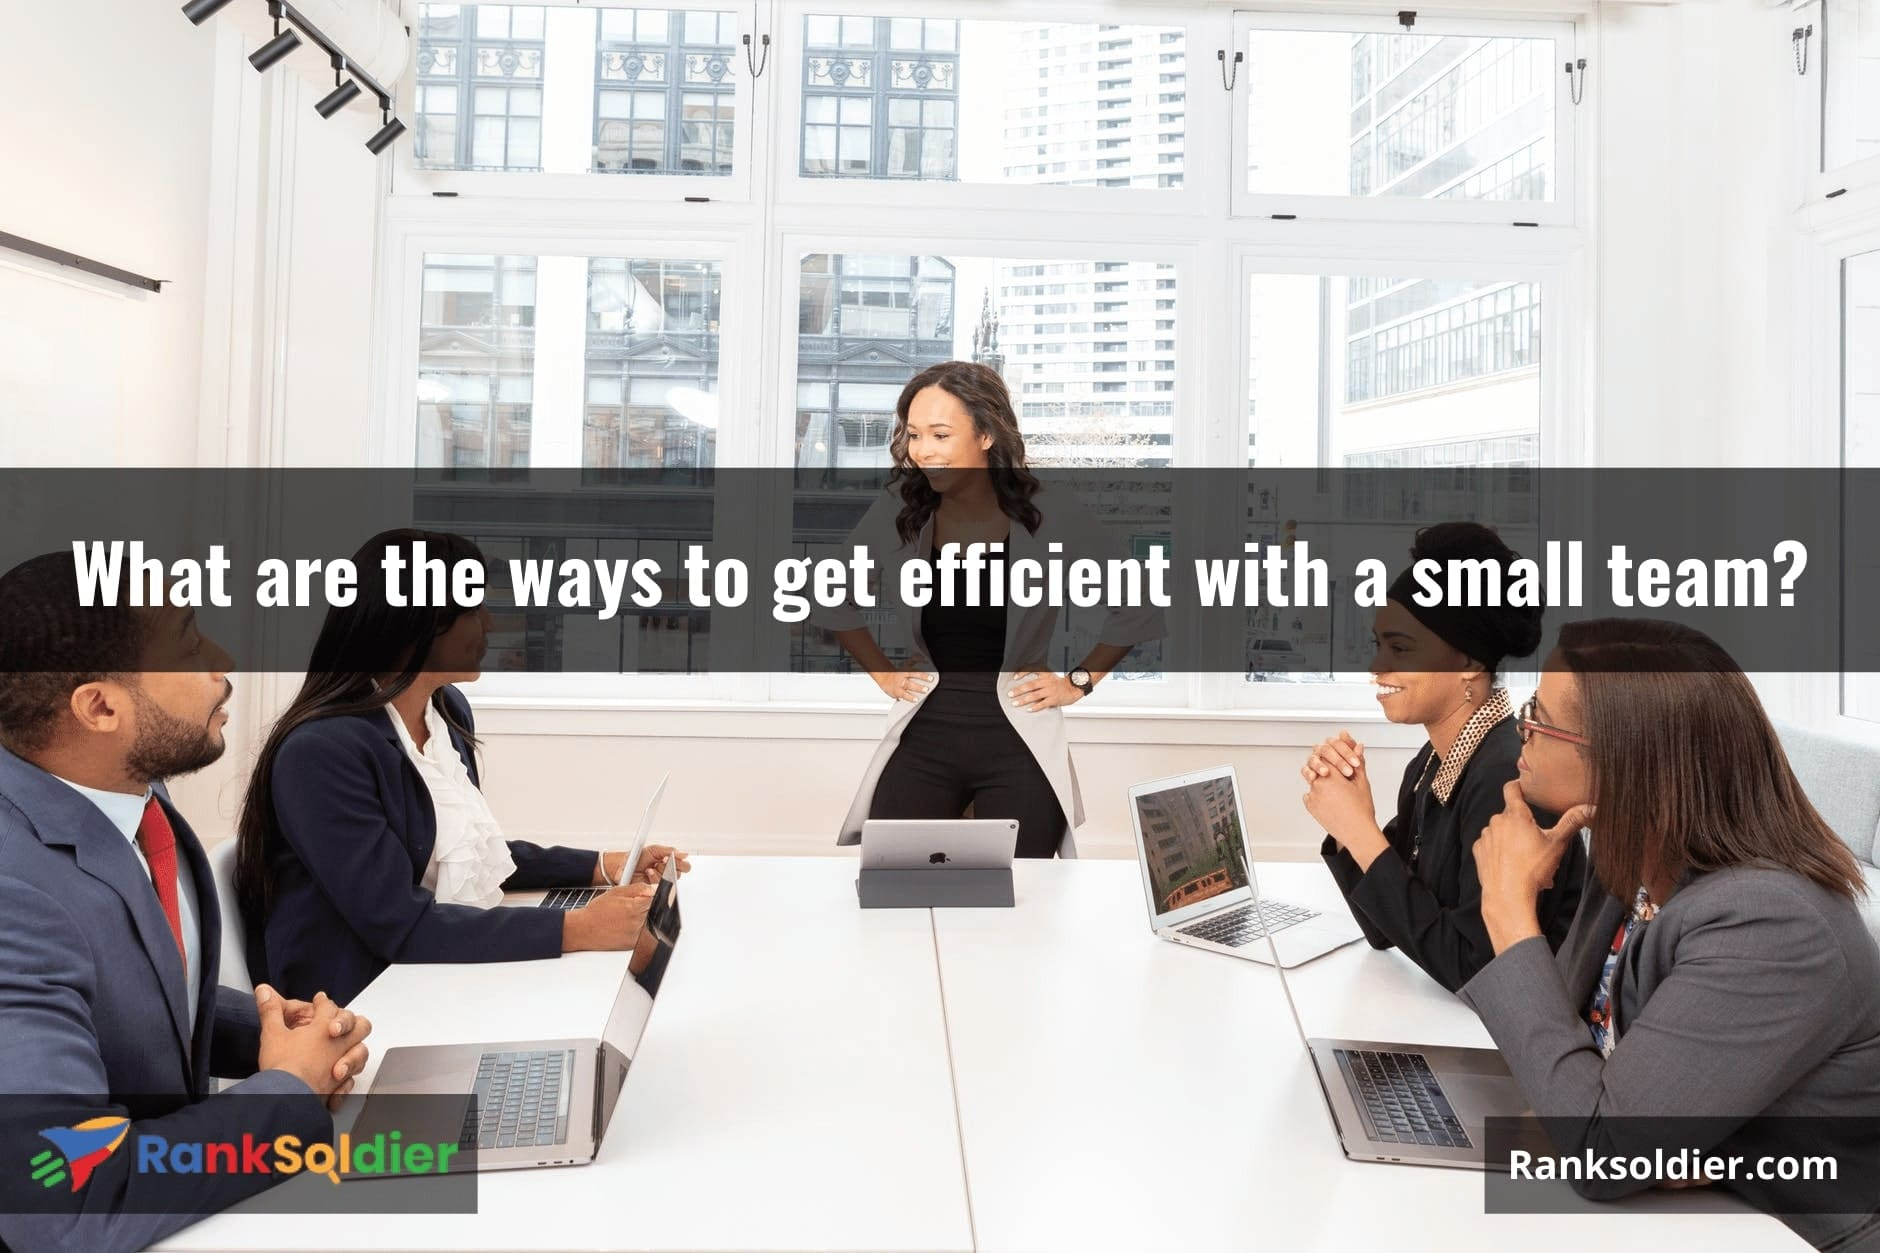 What are the ways to get efficient with a small team